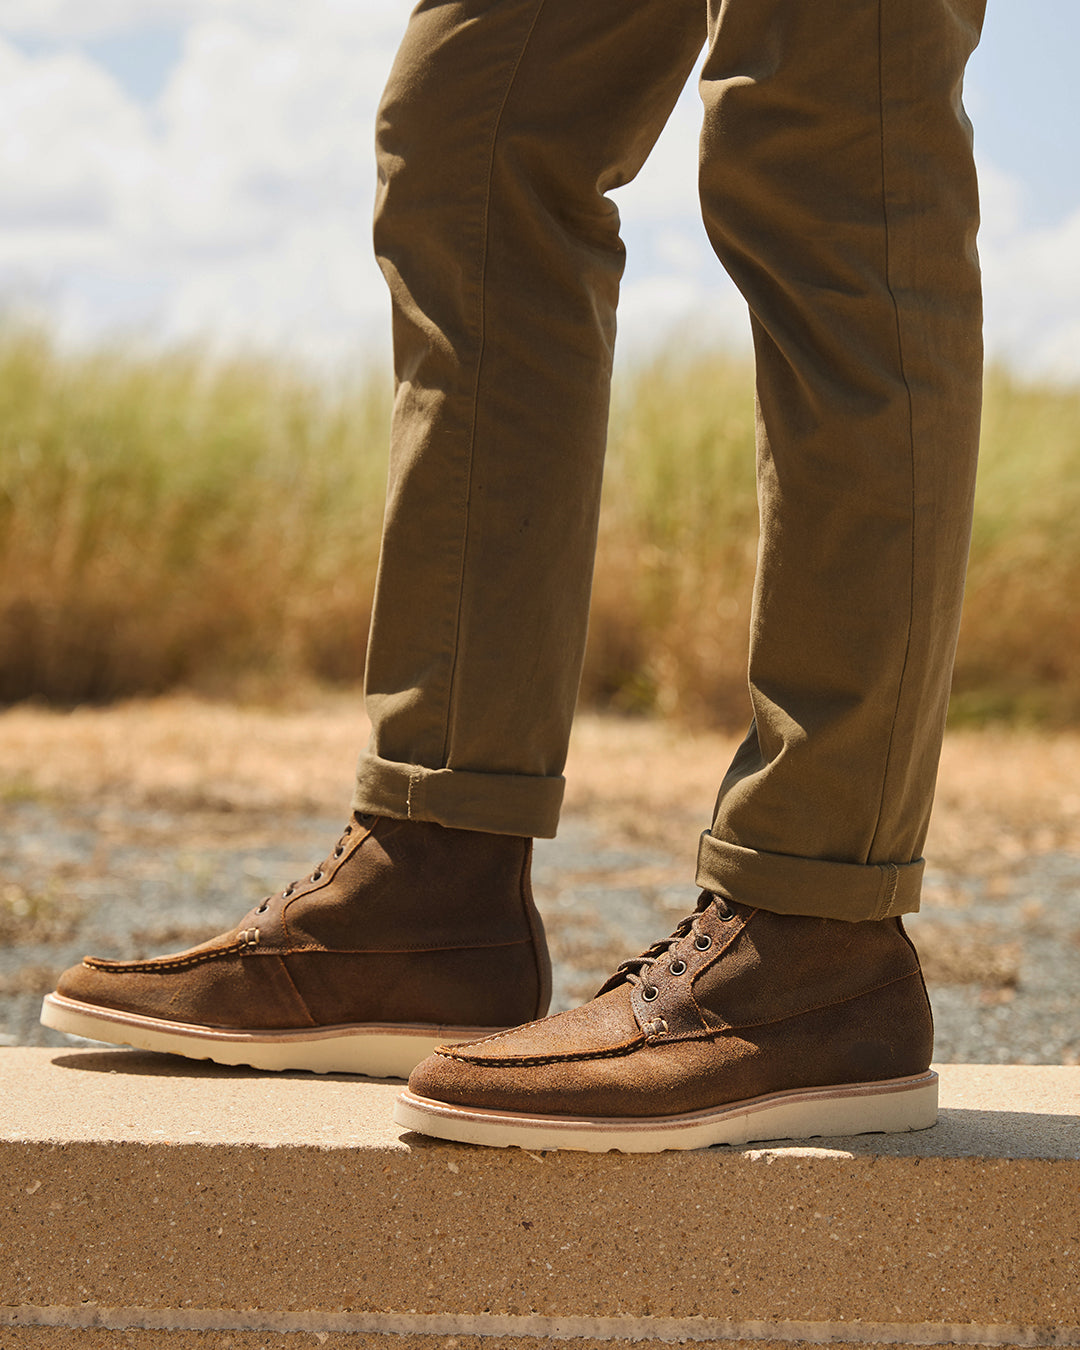 Men's leather all weather boot, waxed brown, Vibram Christy white sole, Hand-sewn moccasin stitch